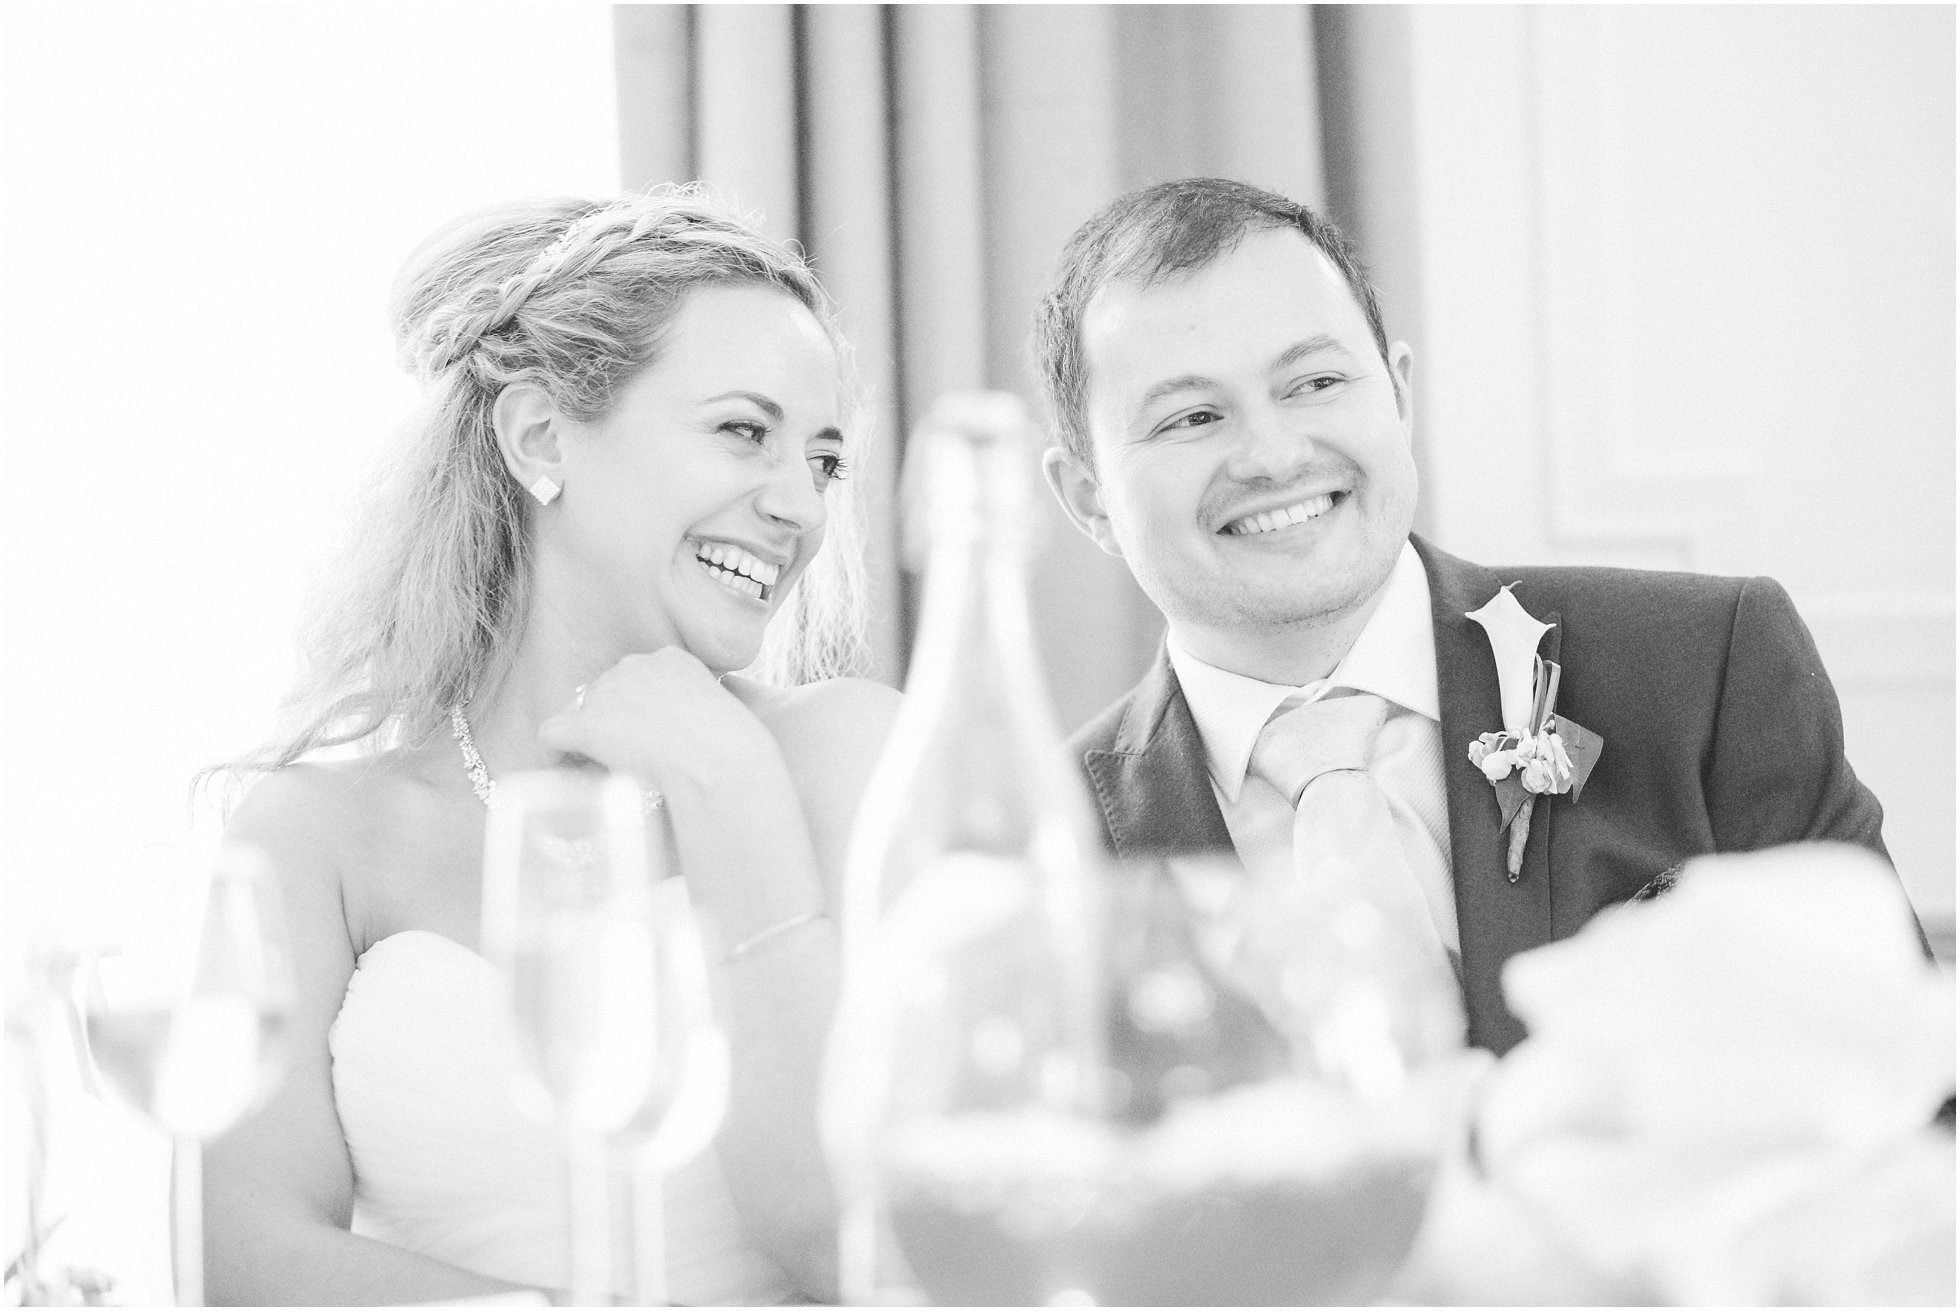 The couple laughing